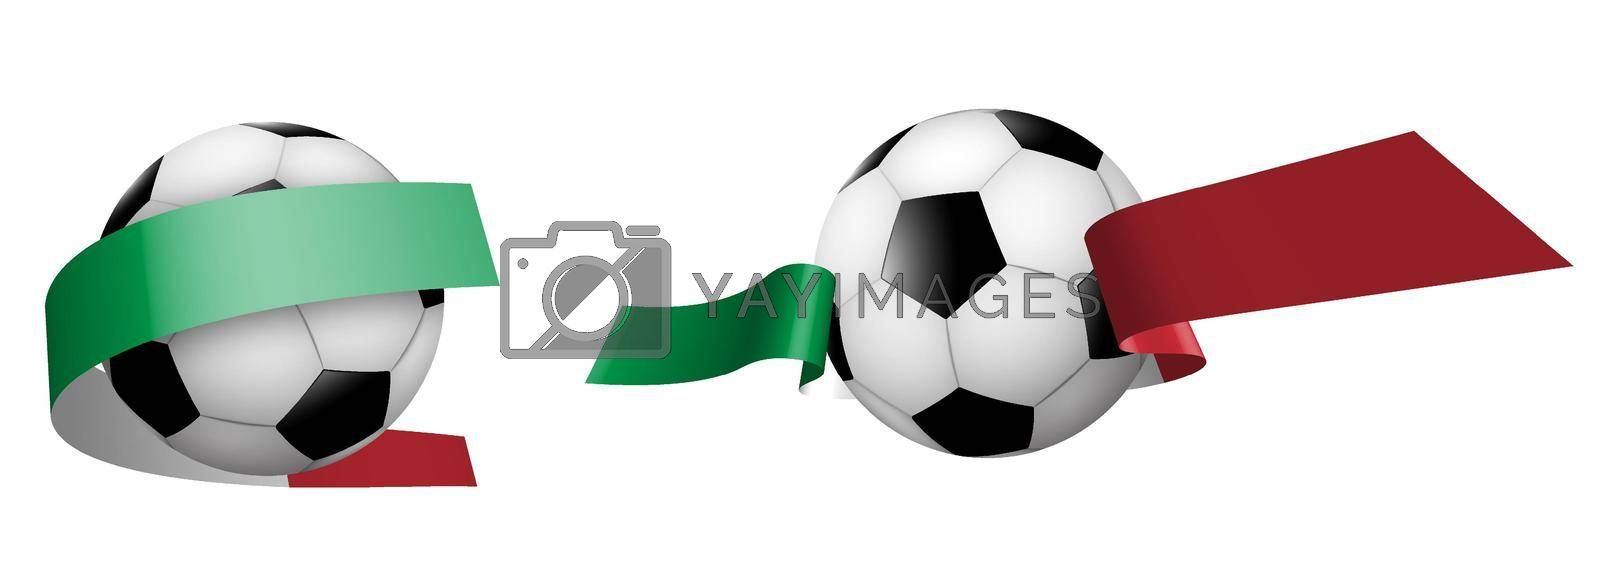 balls for soccer, classic football in ribbons with colors of Italian flag. Design element for football competitions. Italian national team. Isolated vector on white background